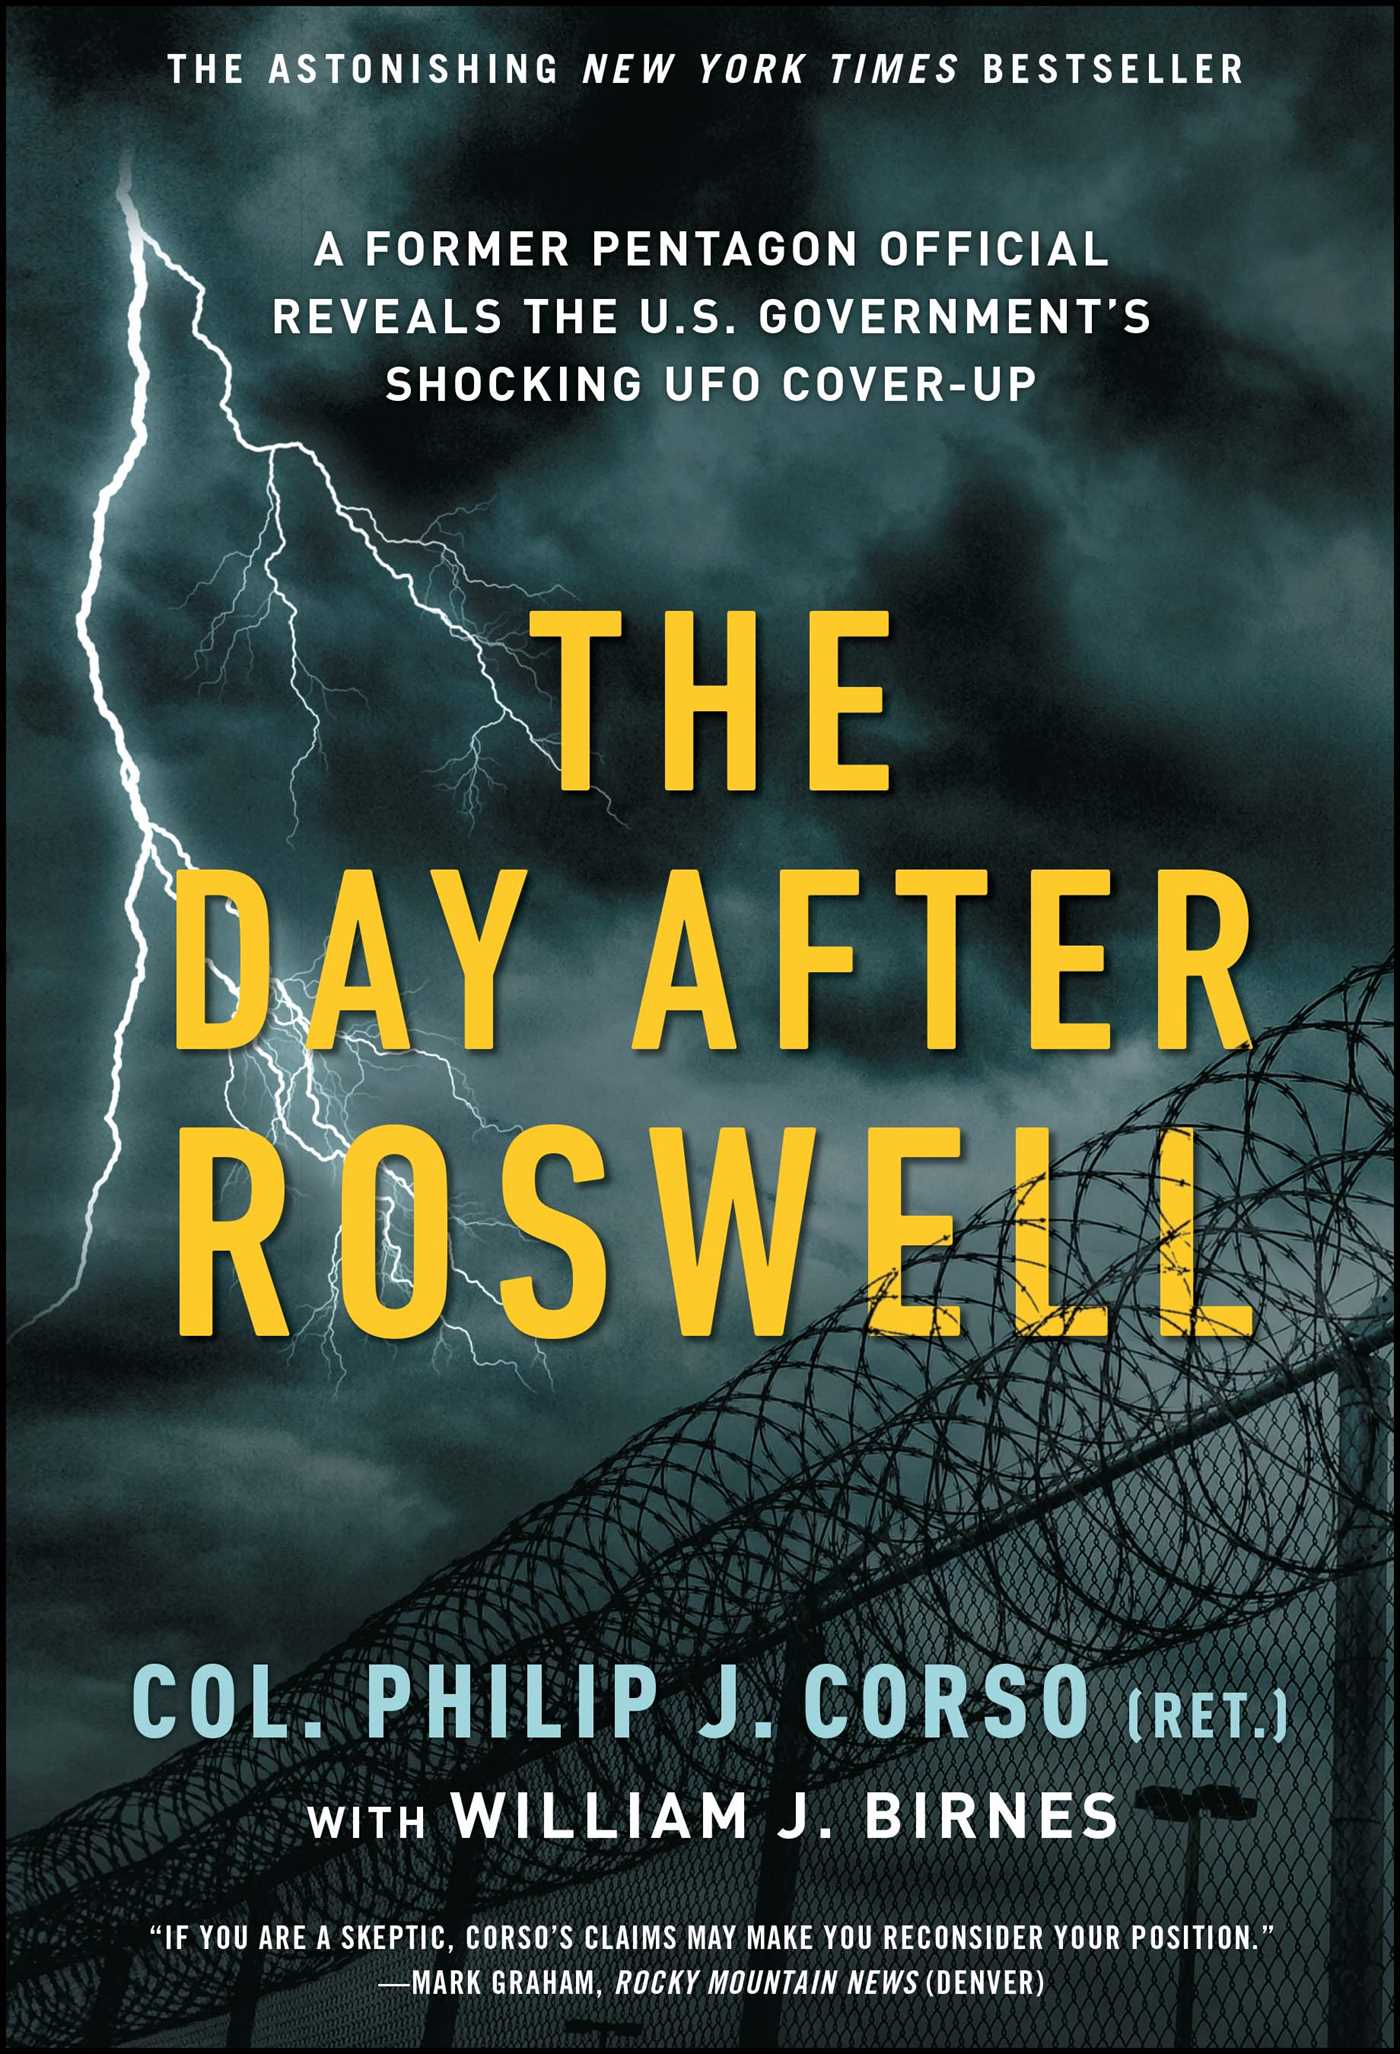 The day after roswell 9781501172007 hr